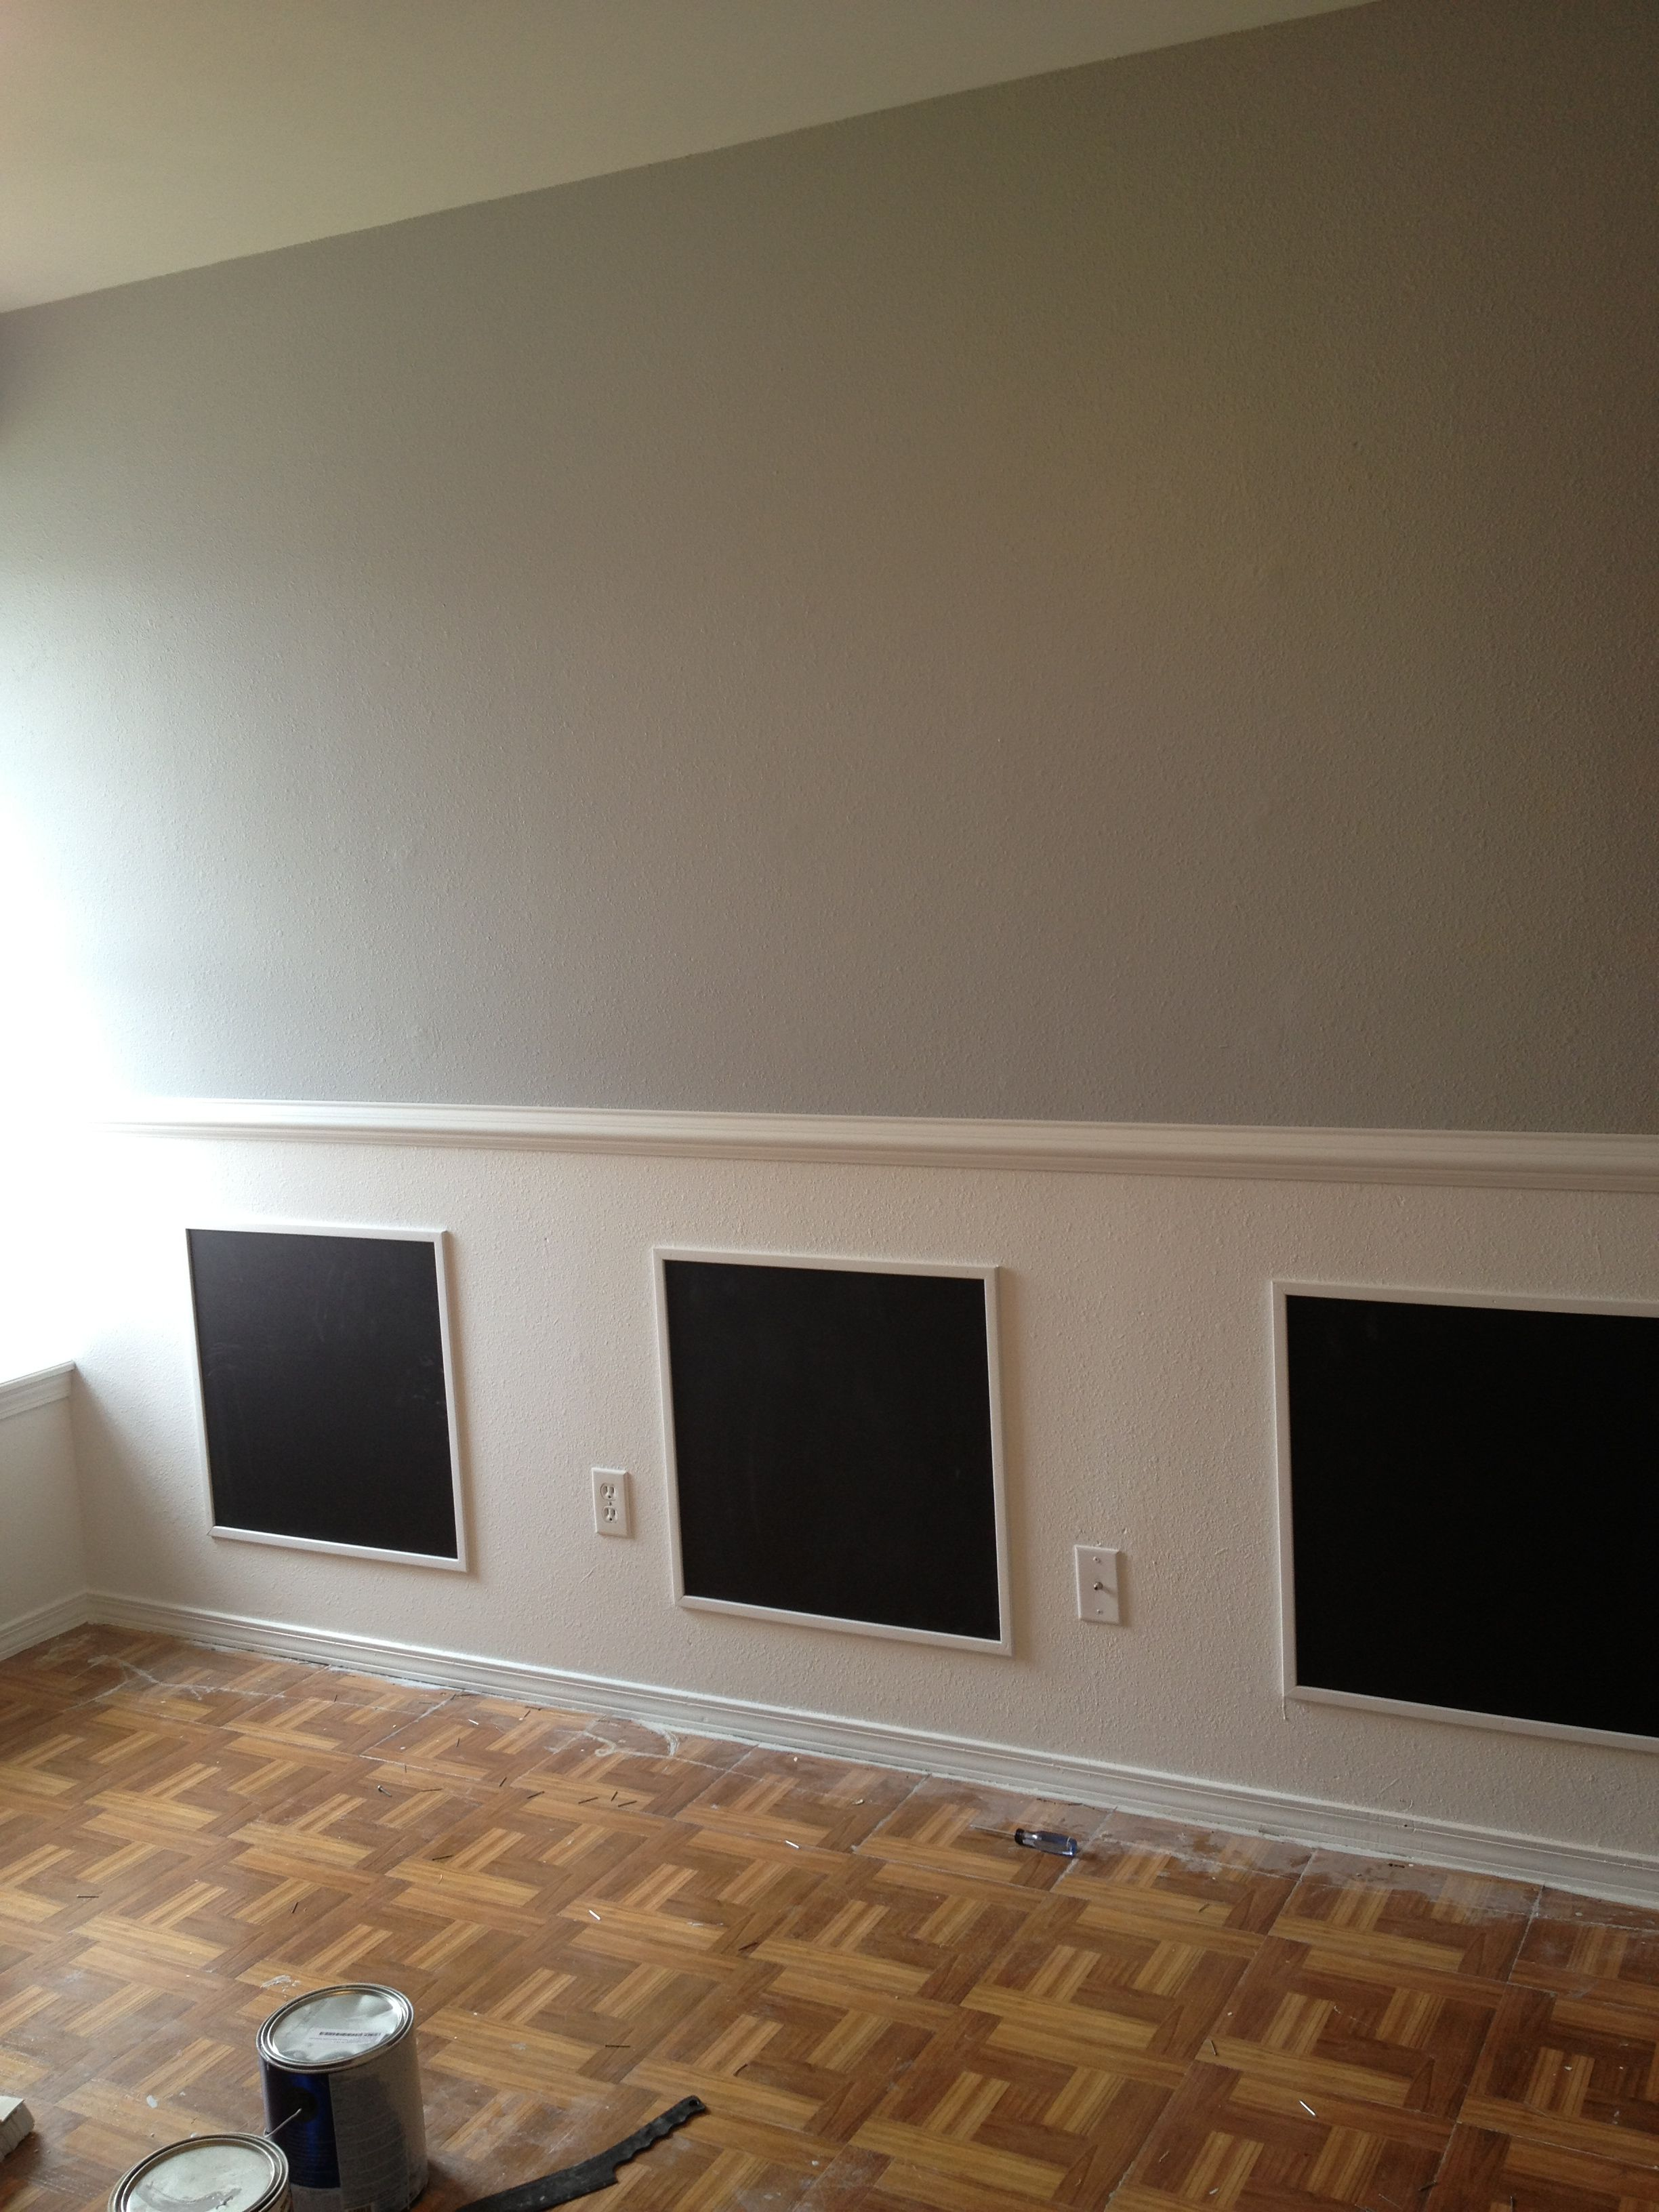 Chalkboard Molding For Toddlers Room Supplies Needed White Paint, Nails,